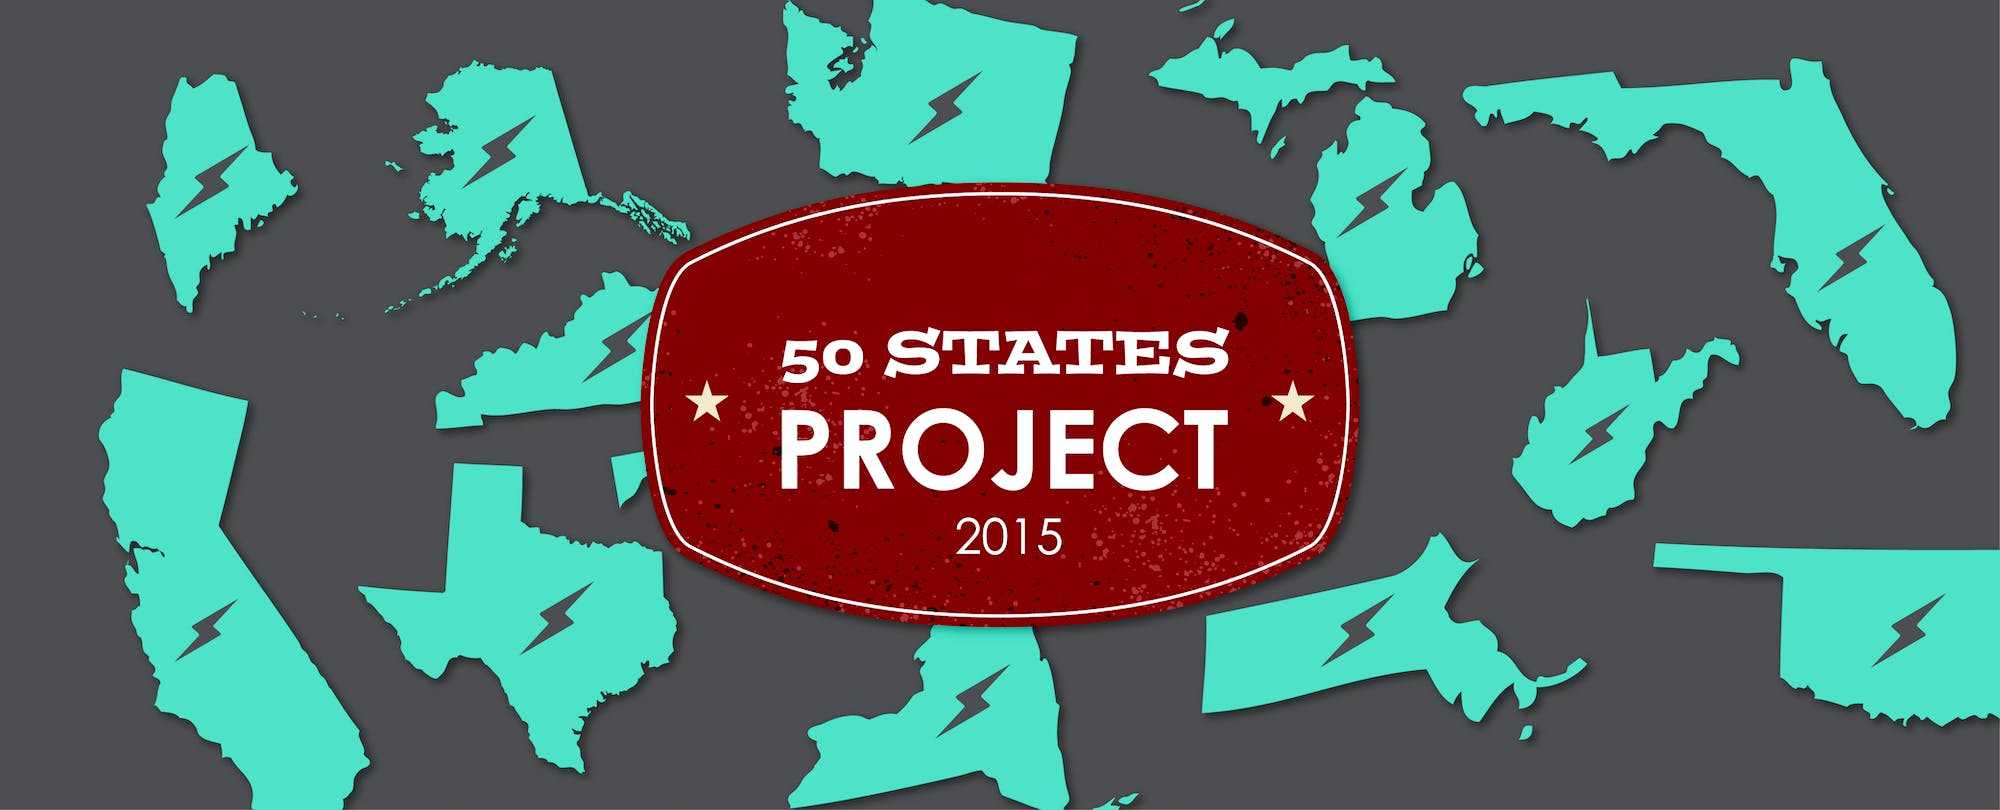 America, the Edtech Savvy: EdSurge Launches Second Annual 'Fifty States Project'